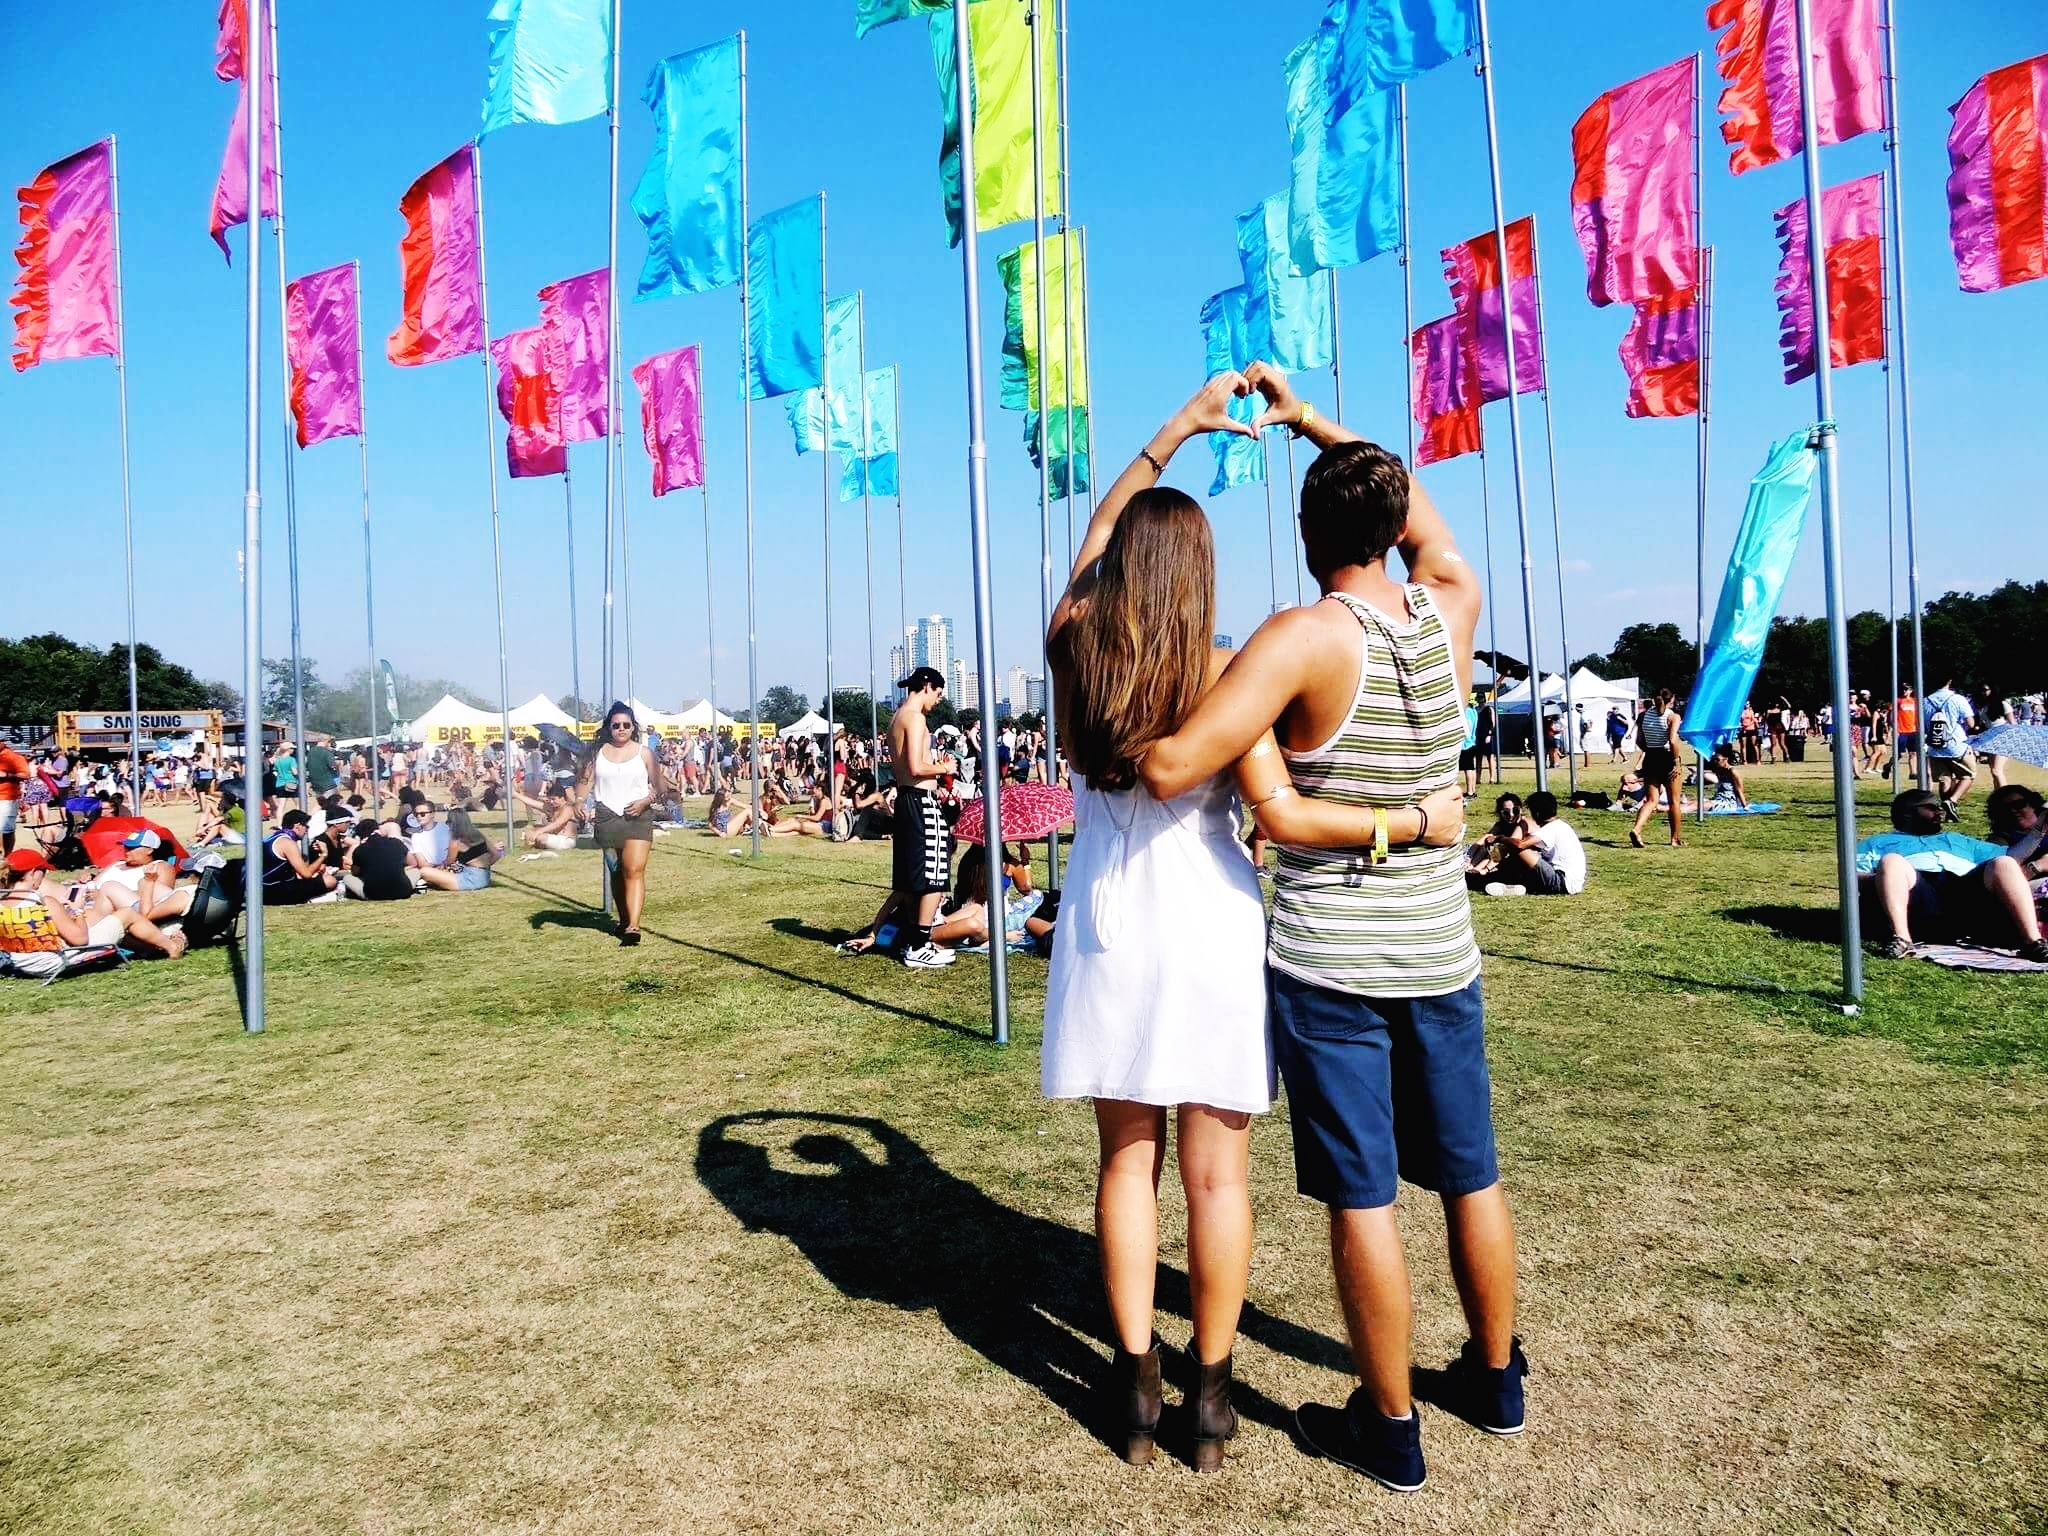 acl-fest-flags